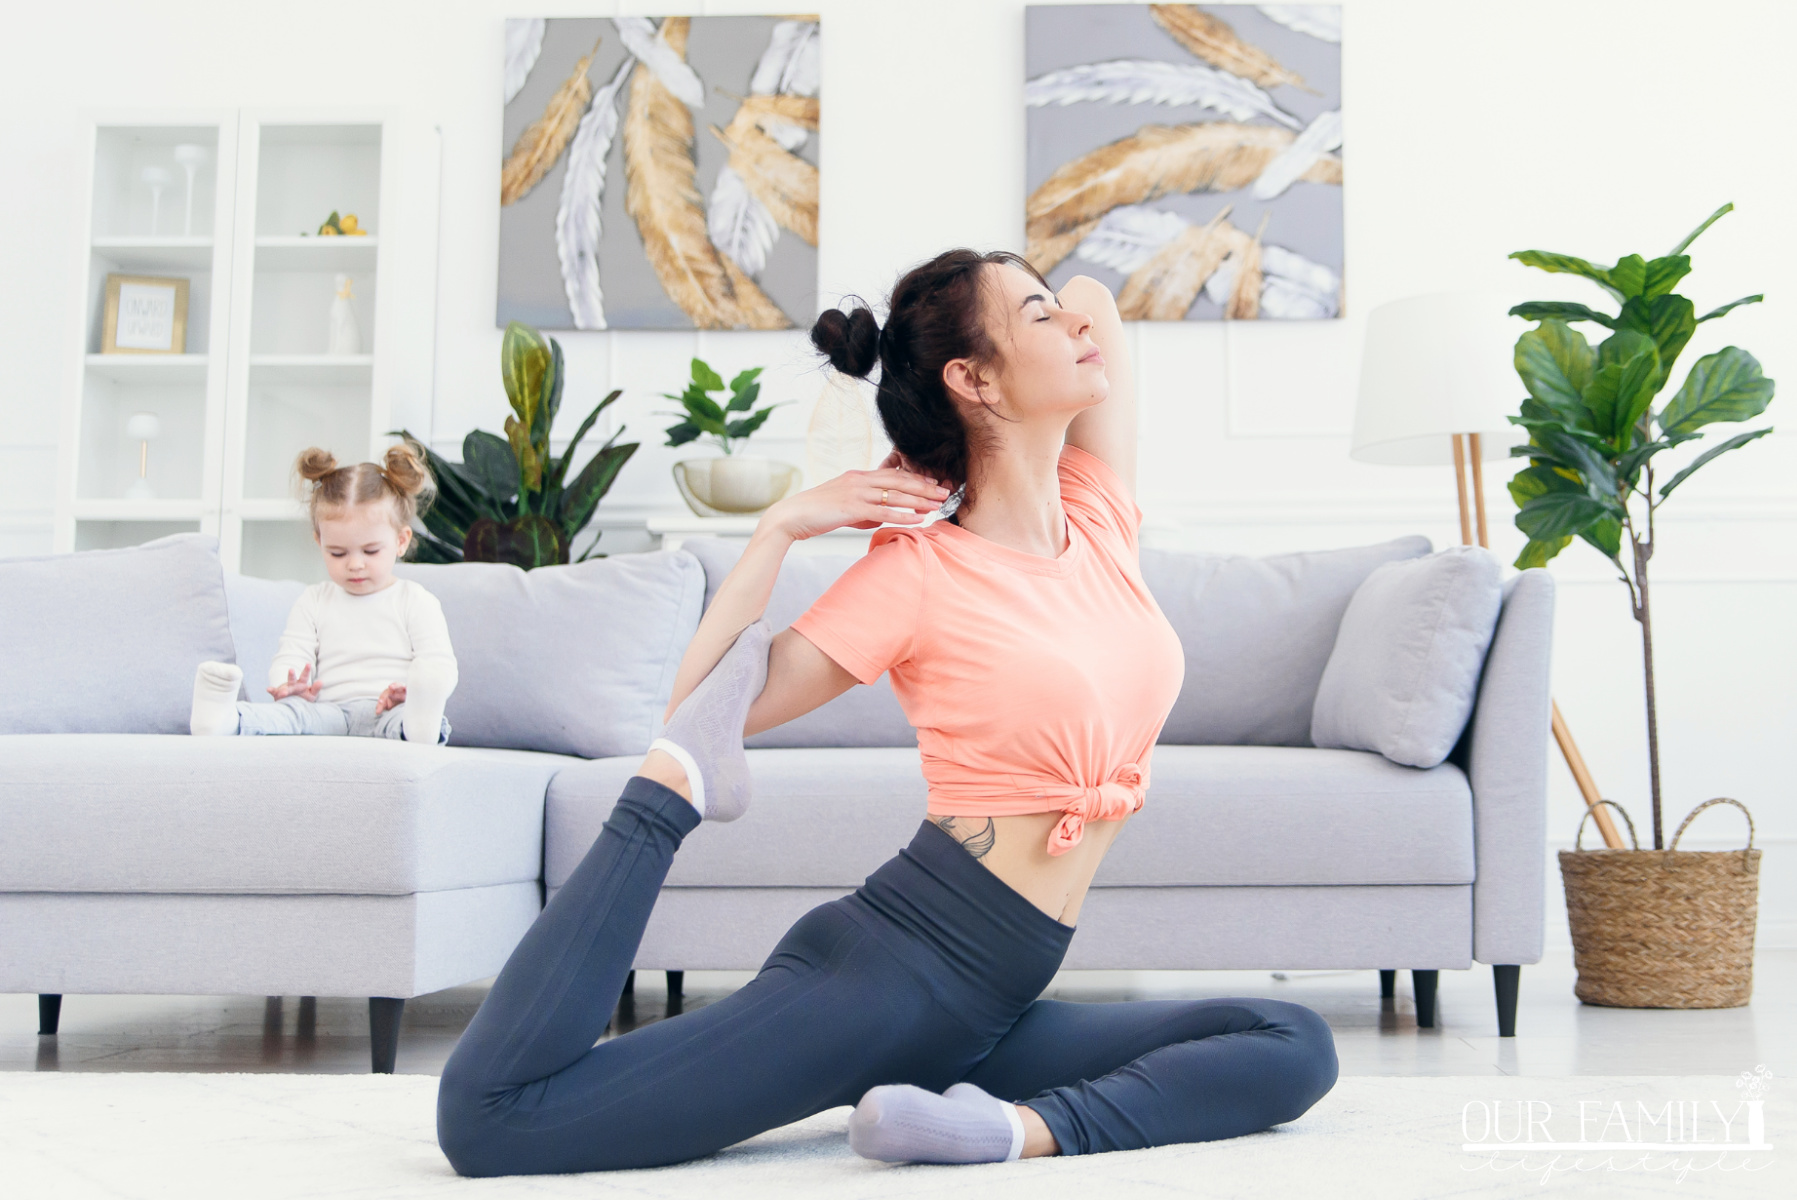 Home Exercise Guide for Busy Parents